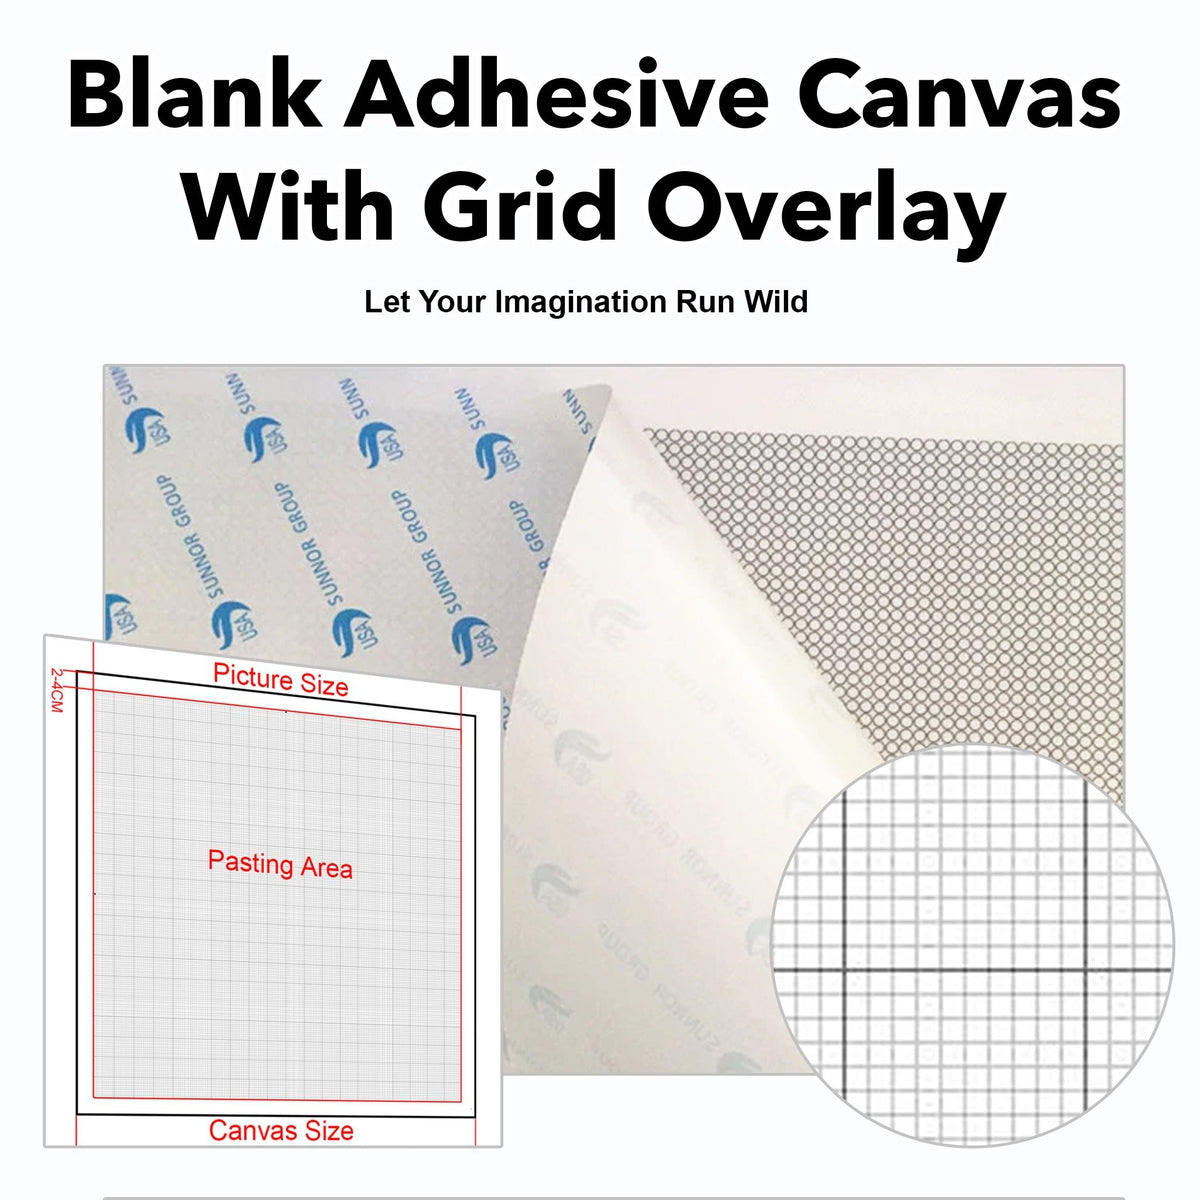 Freestyle Blank Canvas With Adhesive & Printed Grid